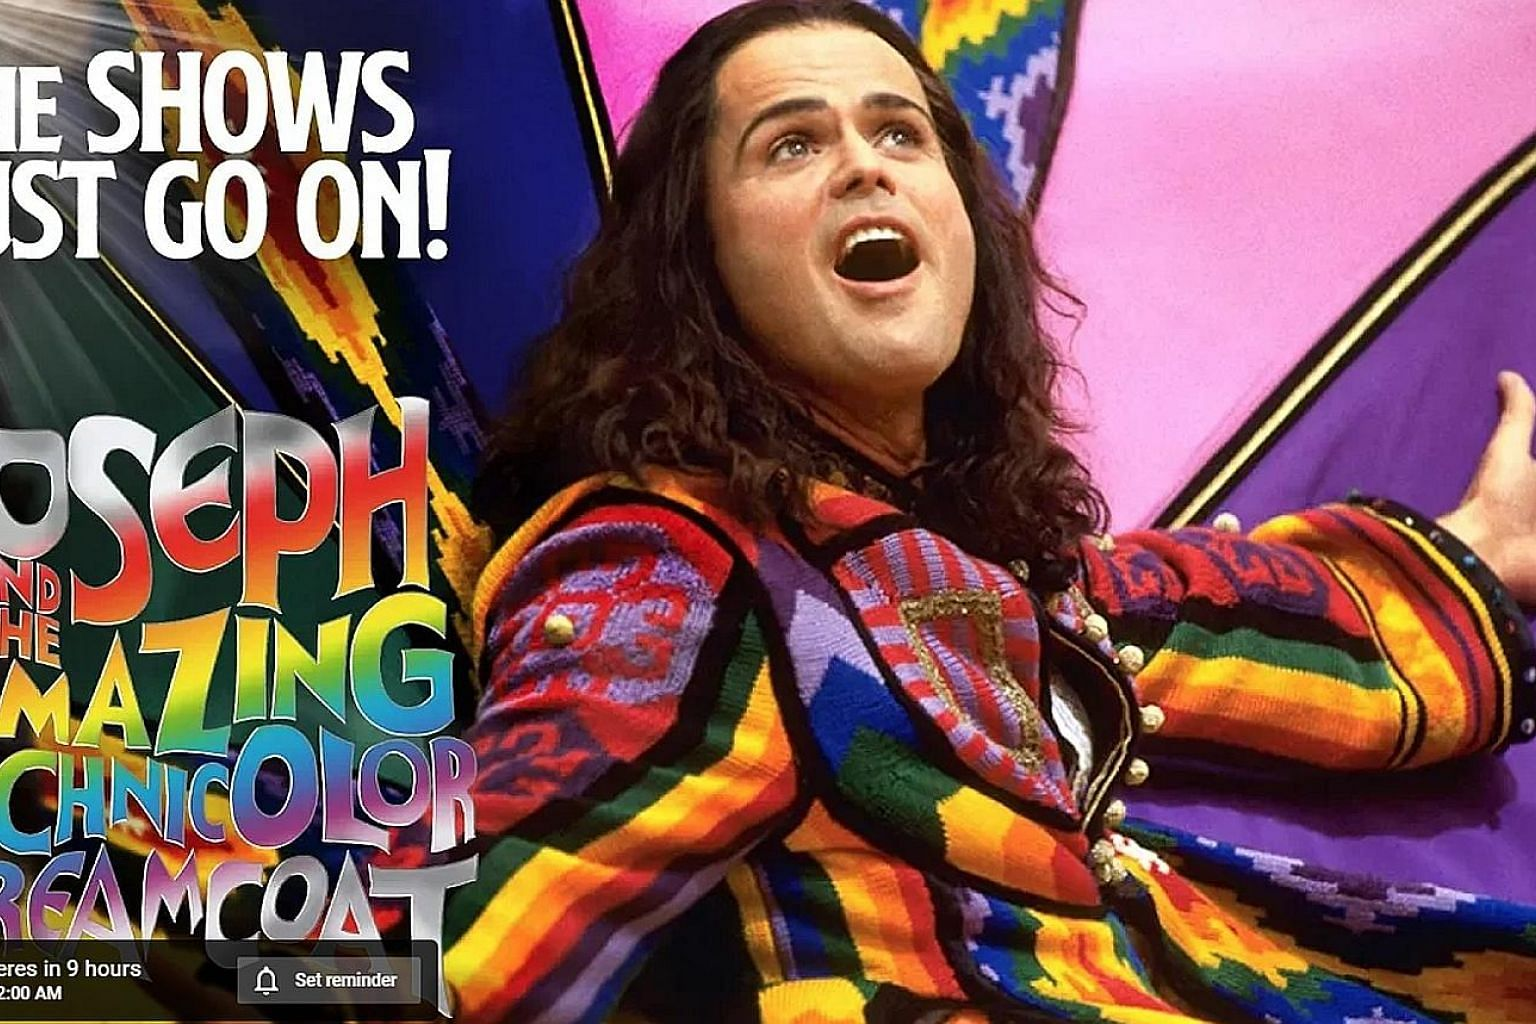 The Shows Must Go On! kicked off yesterday with a 2000 filmed version of Andrew Lloyd Webber's Joseph And The Amazing Technicolor Dreamcoat, starring Donny Osmond (above).